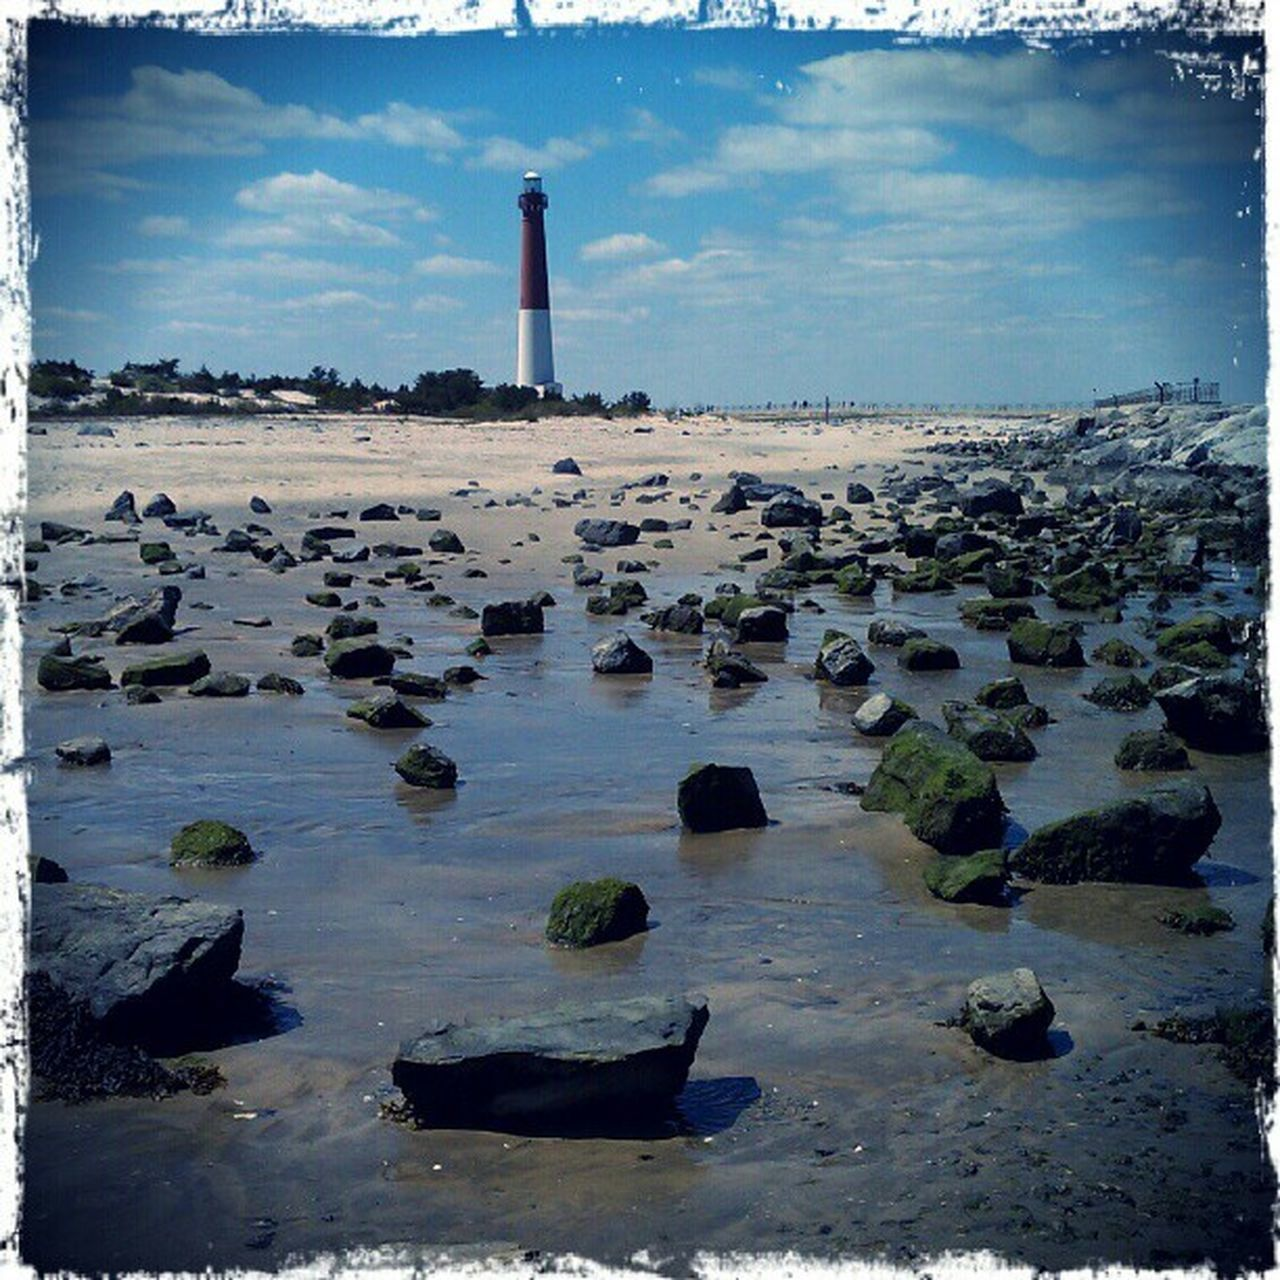 Aprilphotochallenge Photooftheday Aprilphotoaday Day27 Somewhereiwhen APRIL272012 LIGHTHOUSE Newjersey Beaches